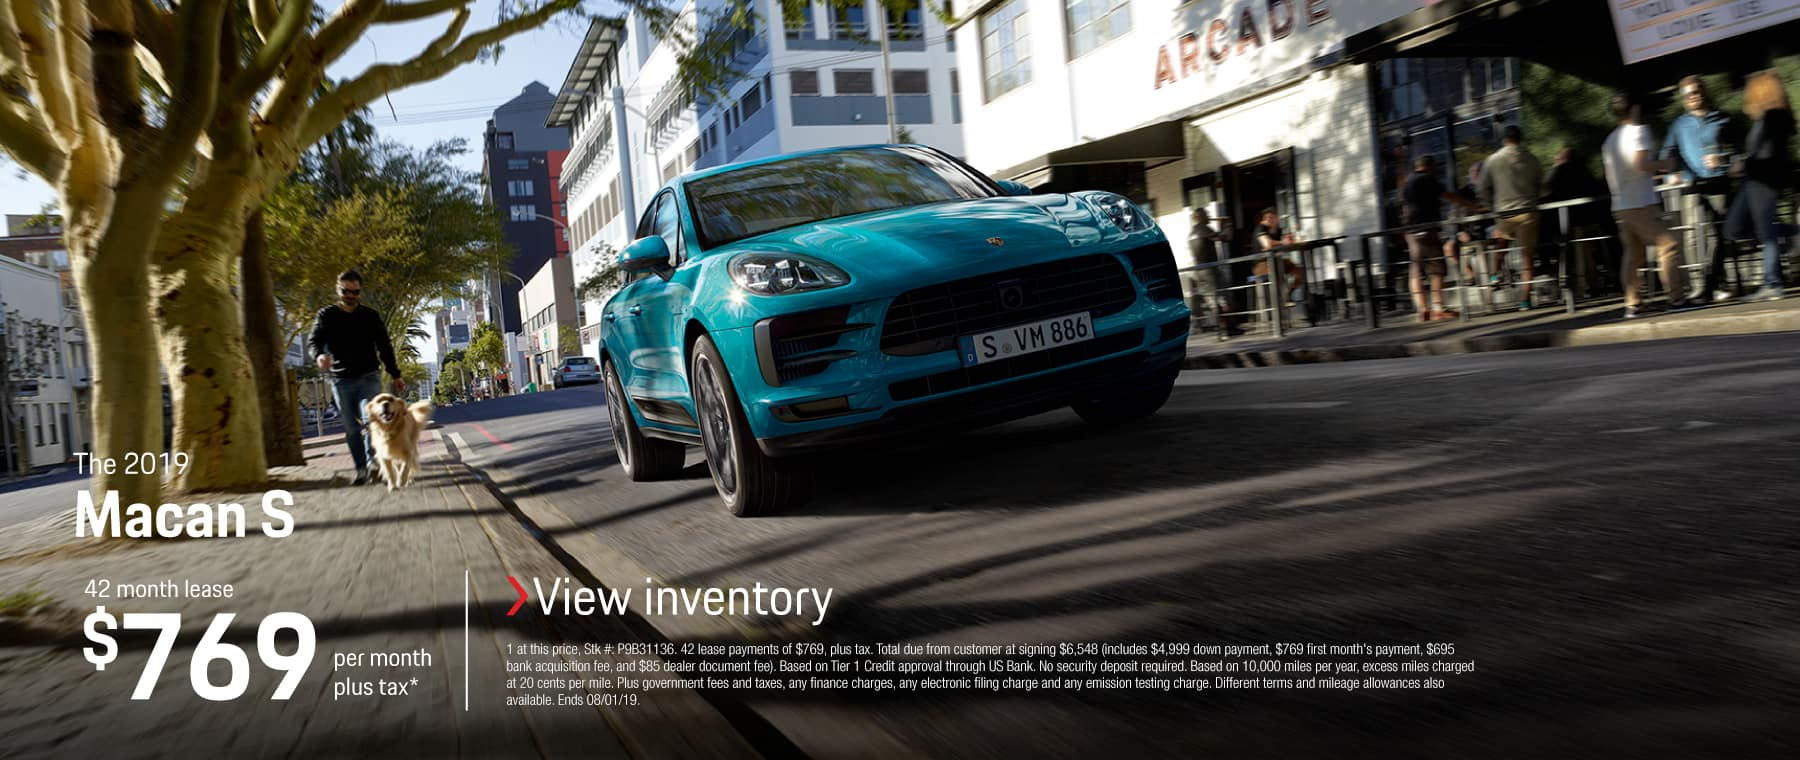 2019 Macan S Lease 769 / 42 months